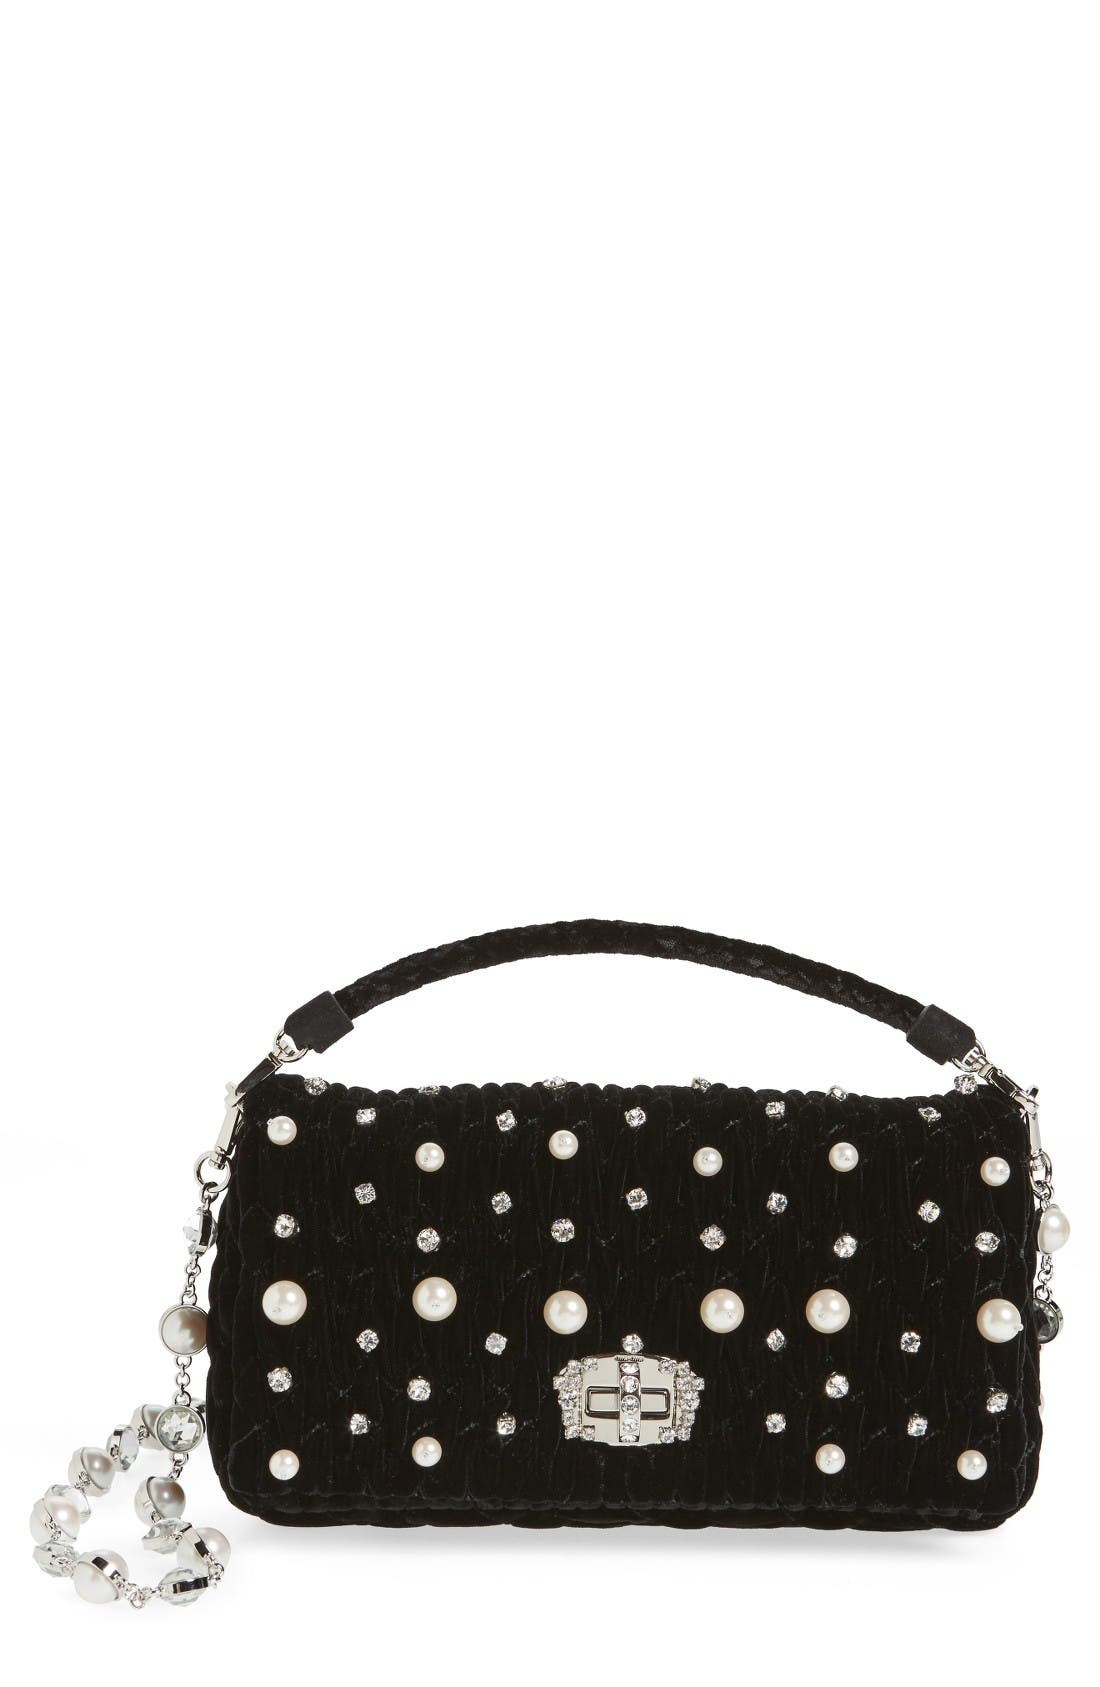 Main Image - Miu Miu Velluto Crystal Embellished Crossbody Clutch